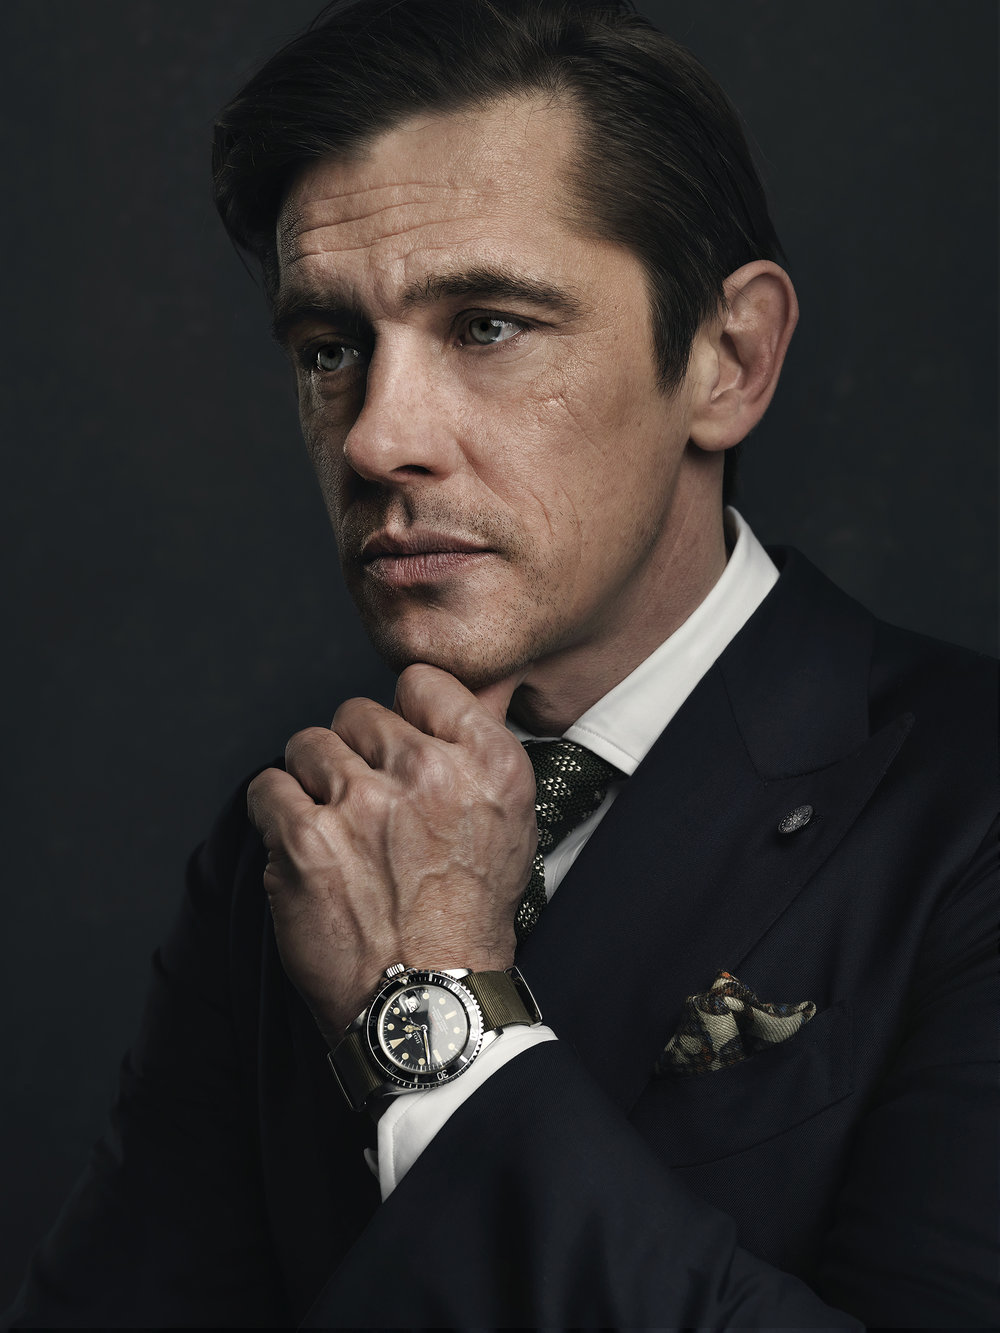 werner schreyer view more